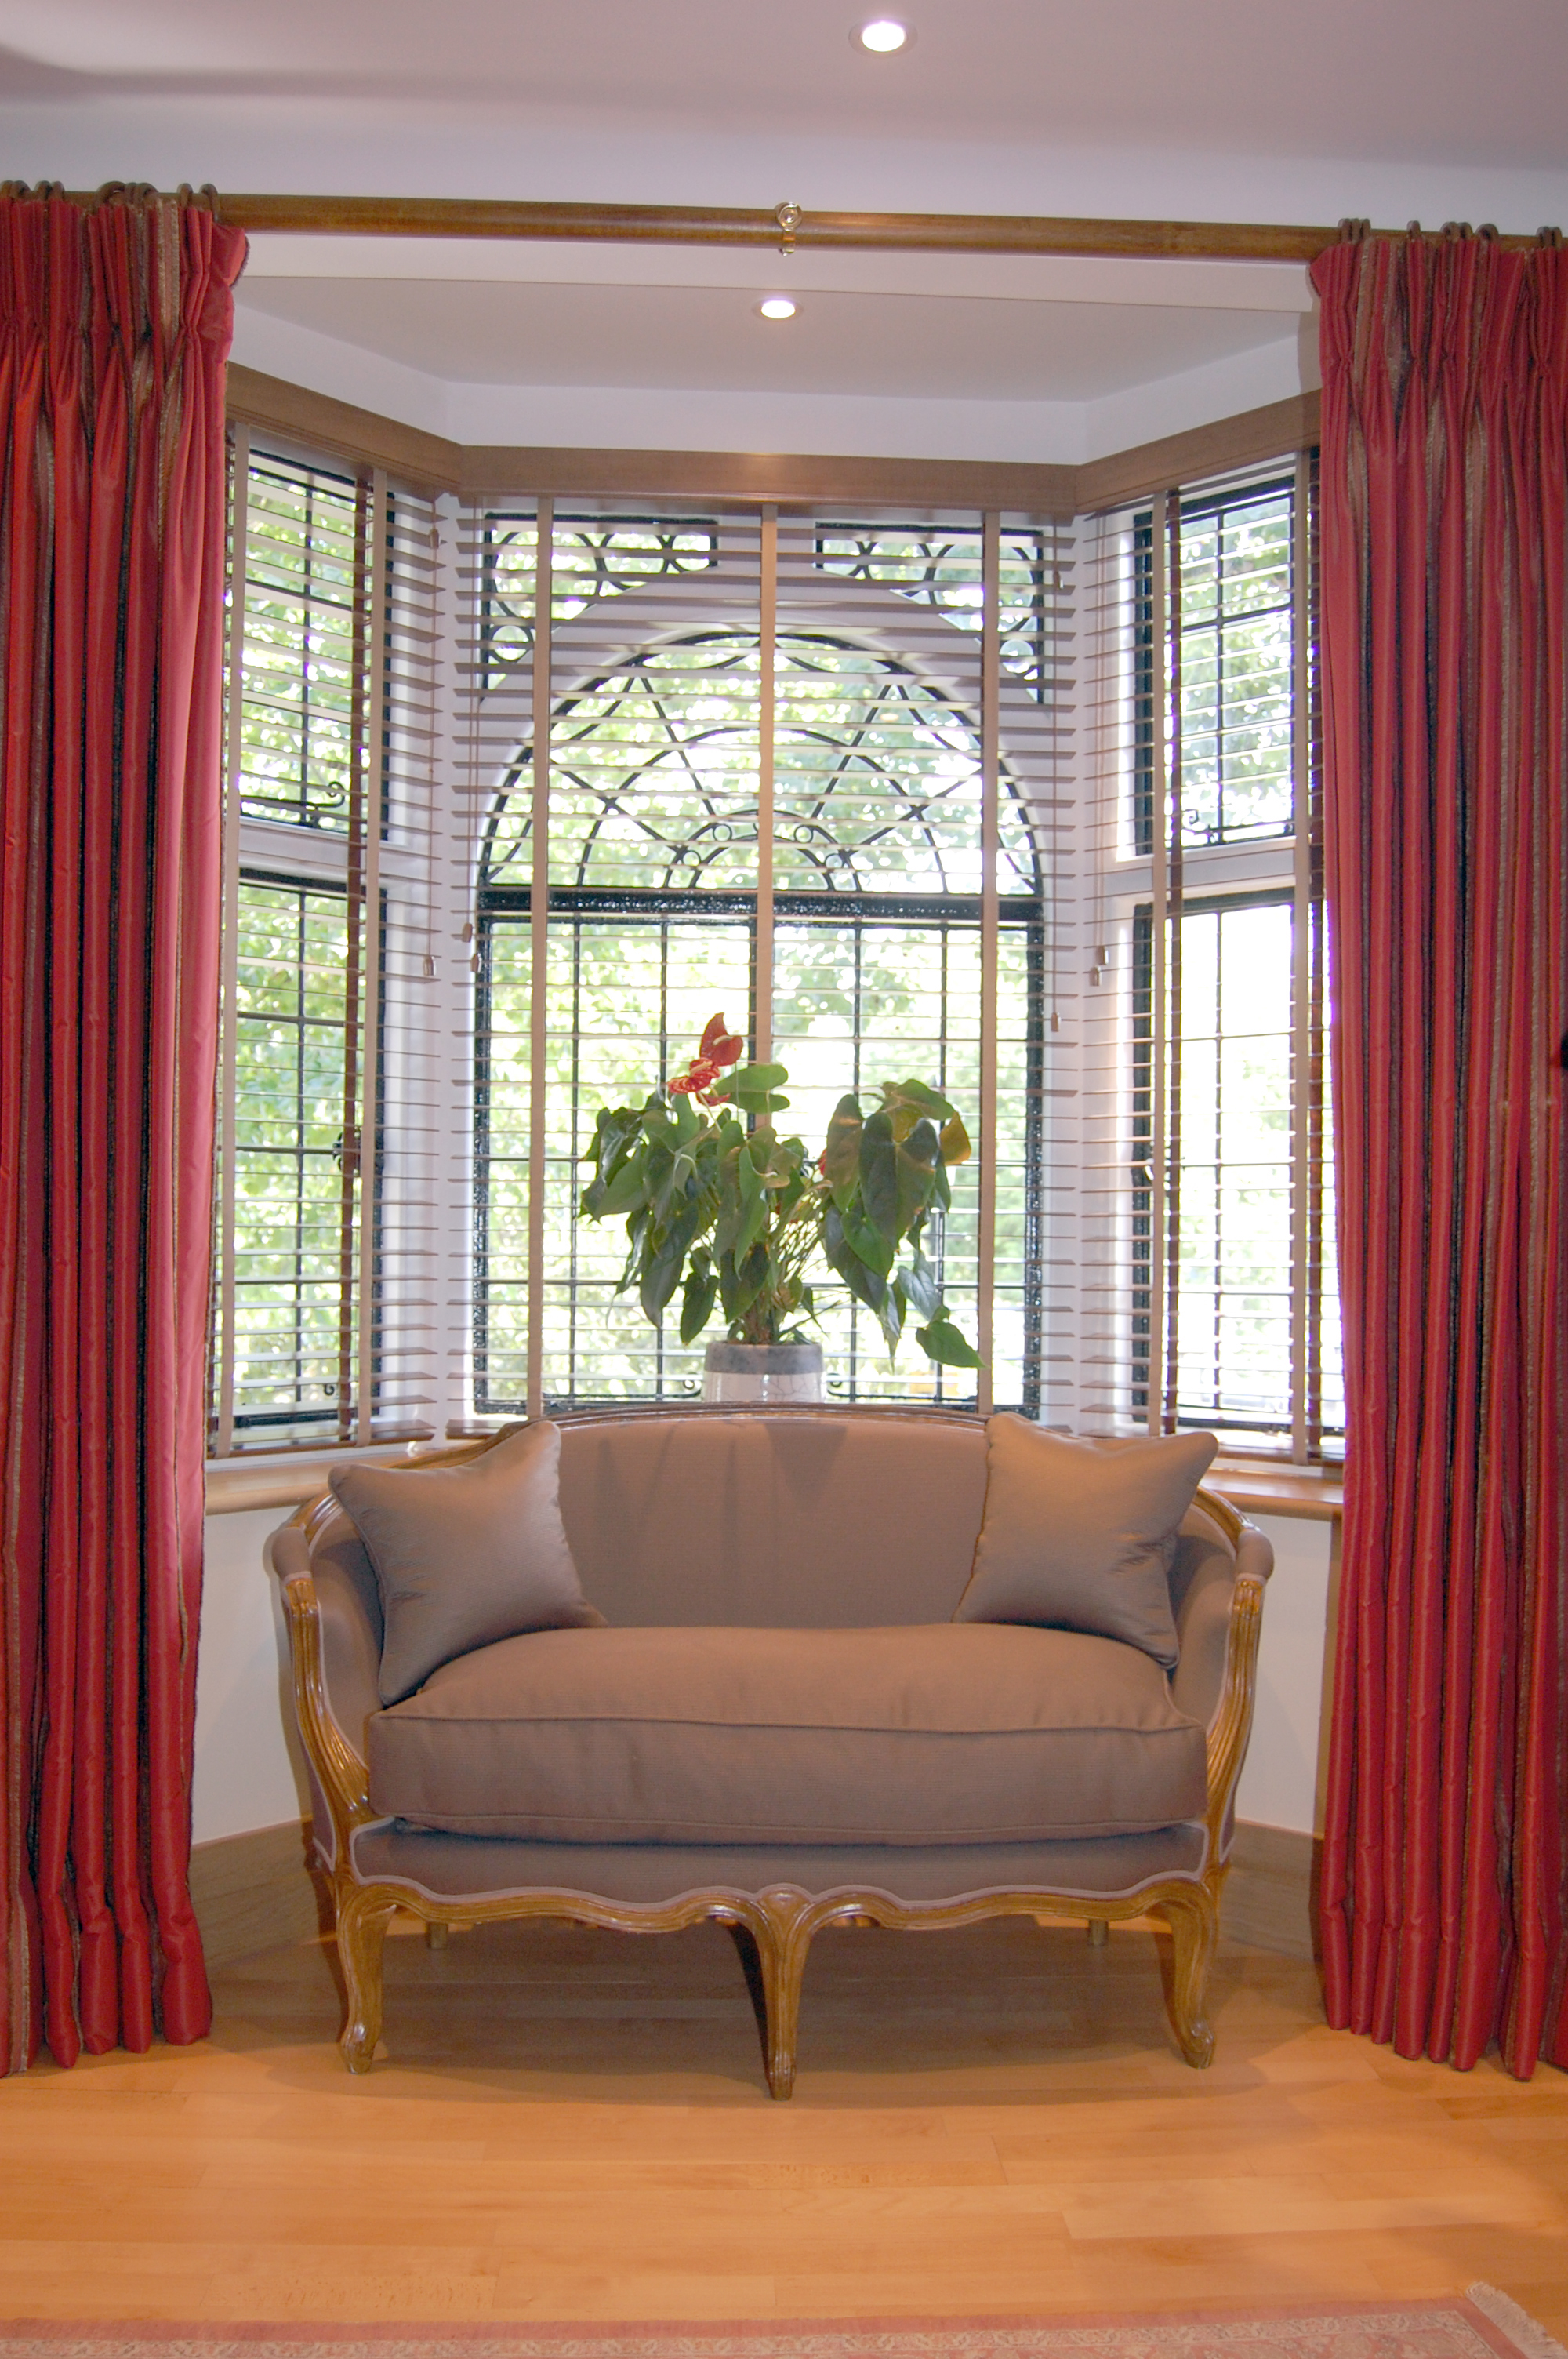 Window Drapes | Window Curtains and Drapes Ideas | Colorful Curtains